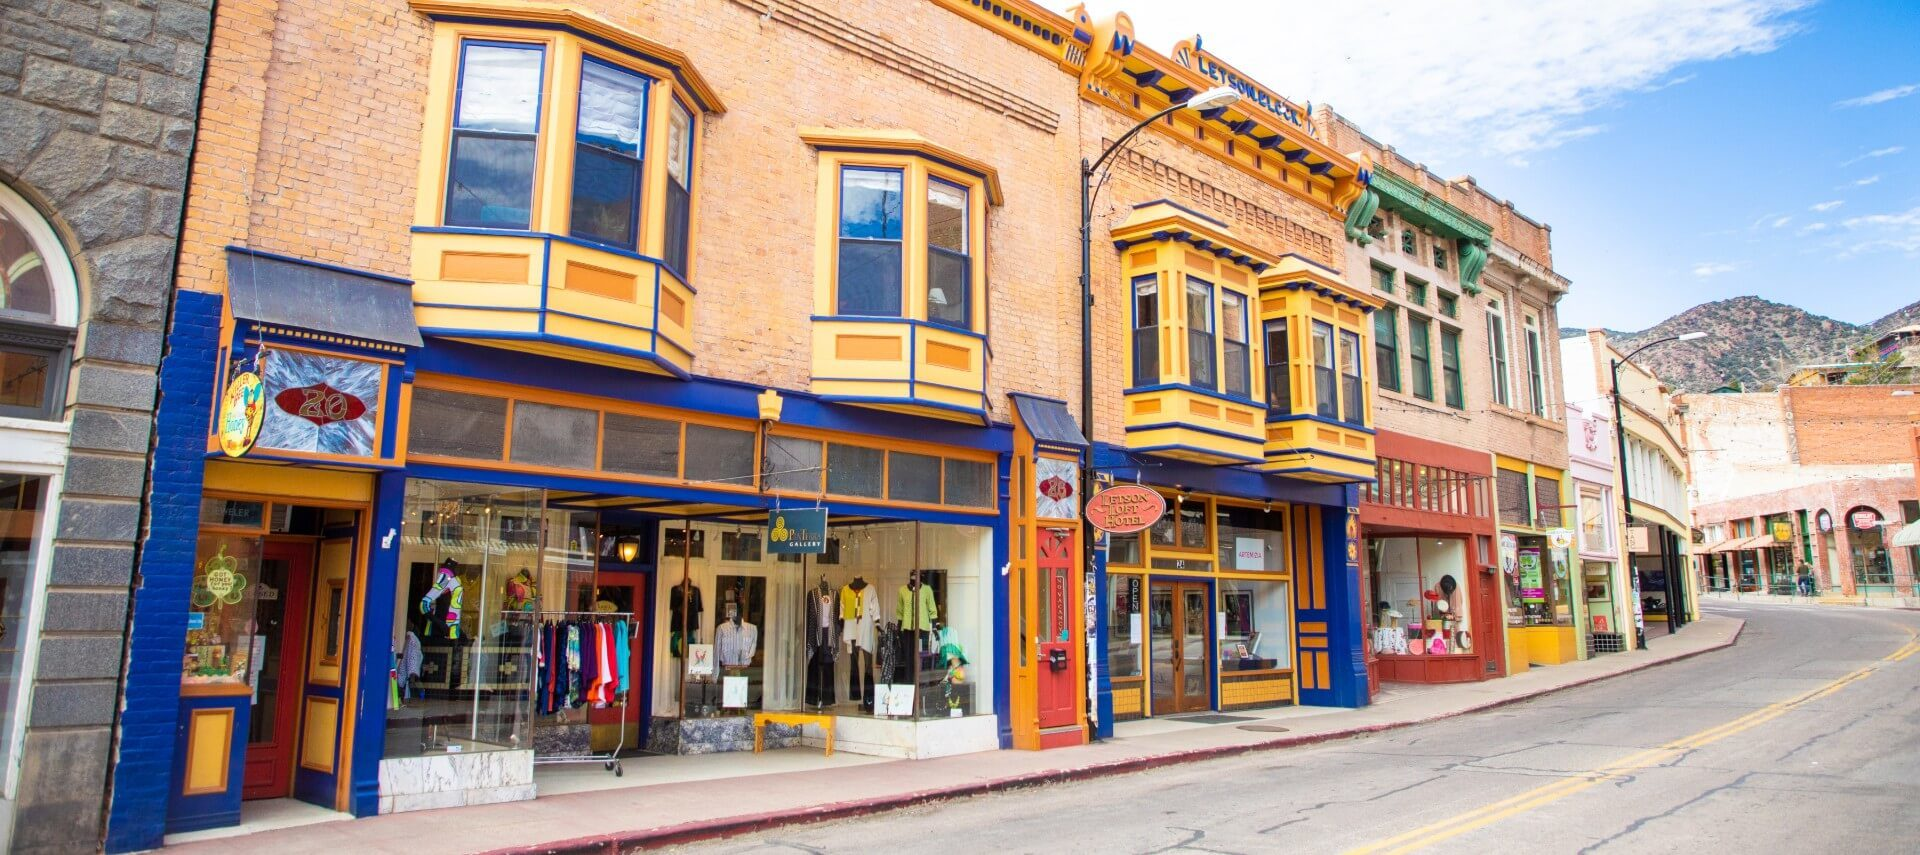 Quiet empty street showing several storefronts with colorful, decorative windows